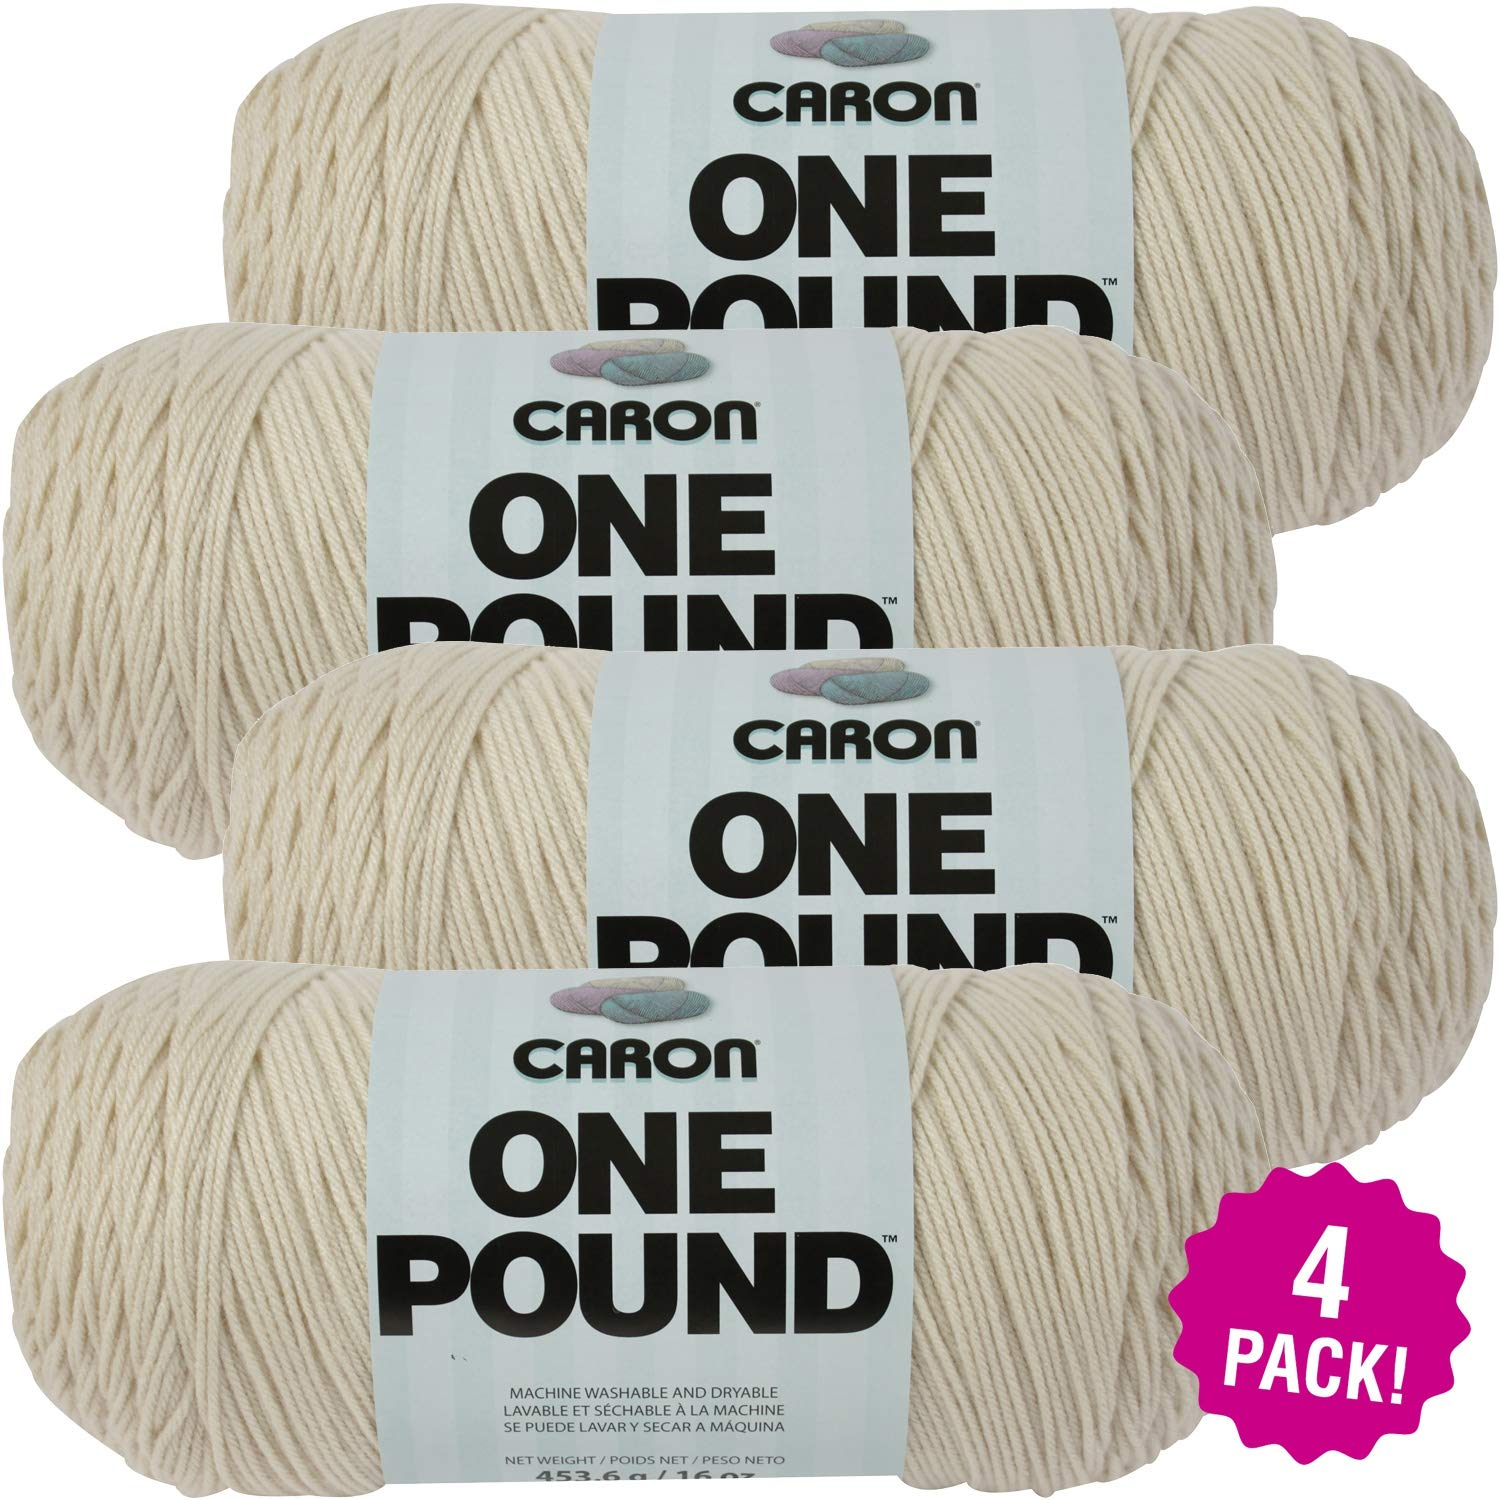 Caron 99612 One Pound Yarn-Off White, Multipack of 4, Pack